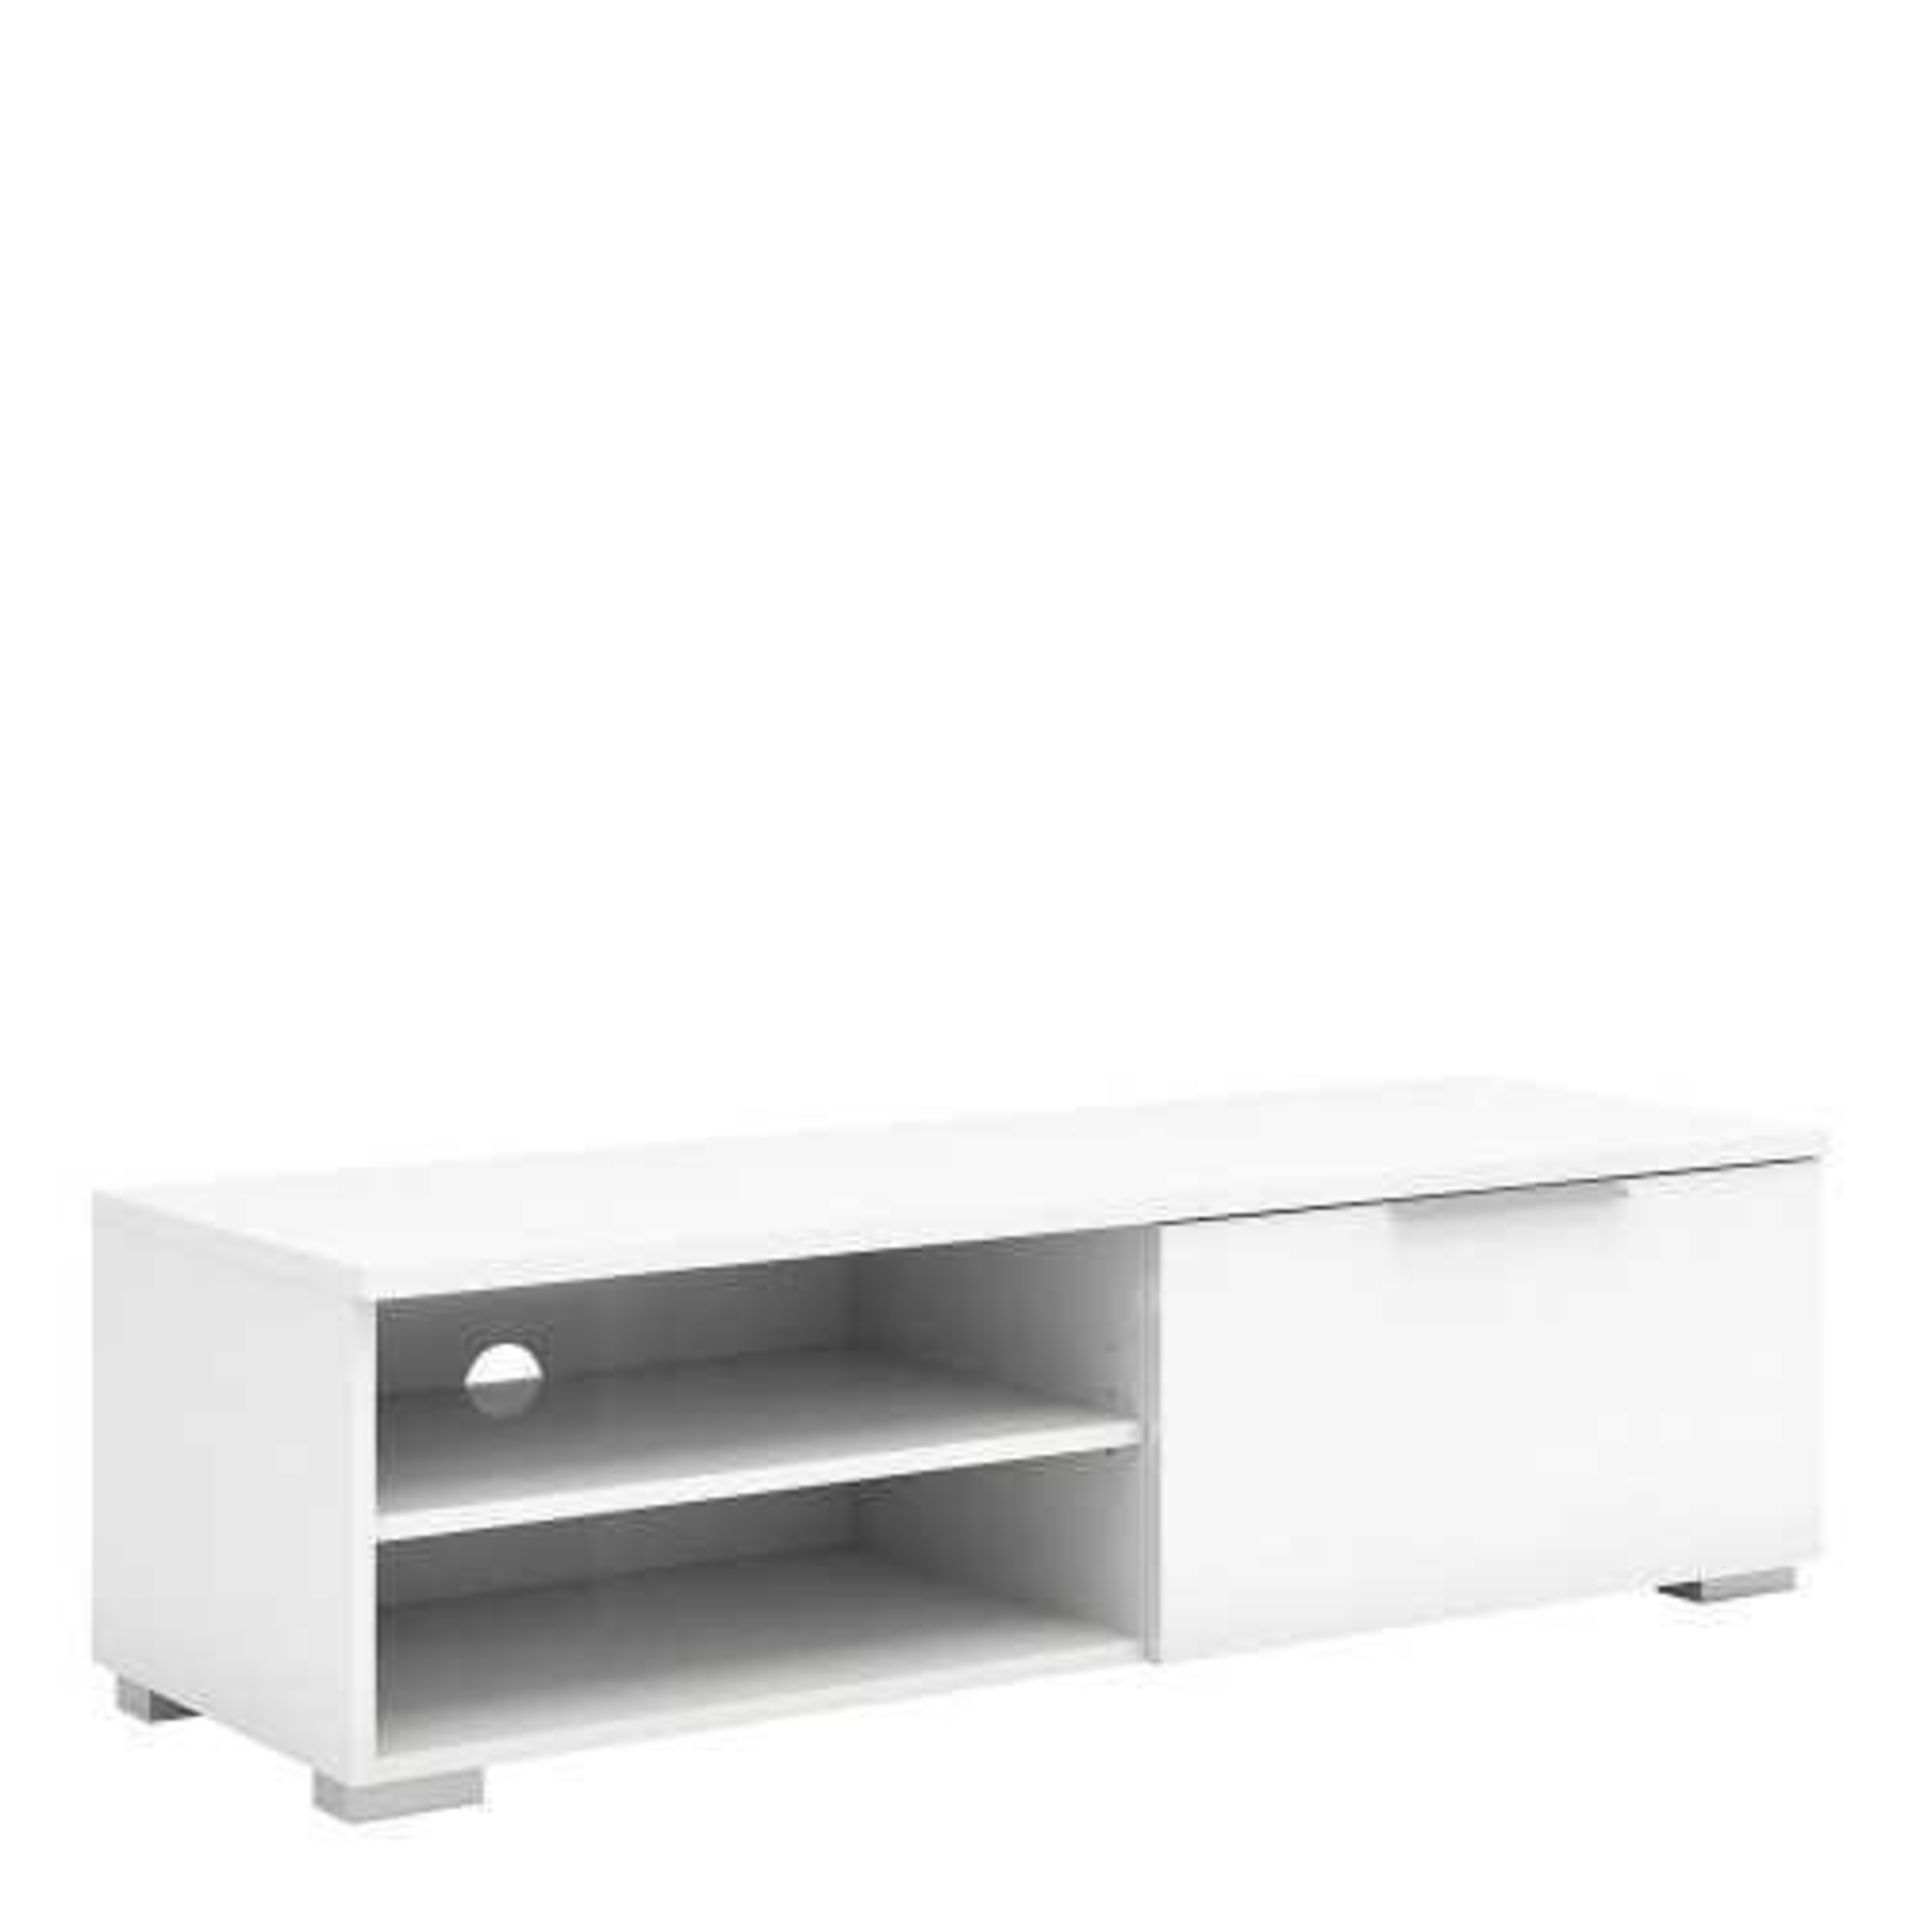 RRP £200 - New Boxed 'Mikado' Television Unit In White High Gloss